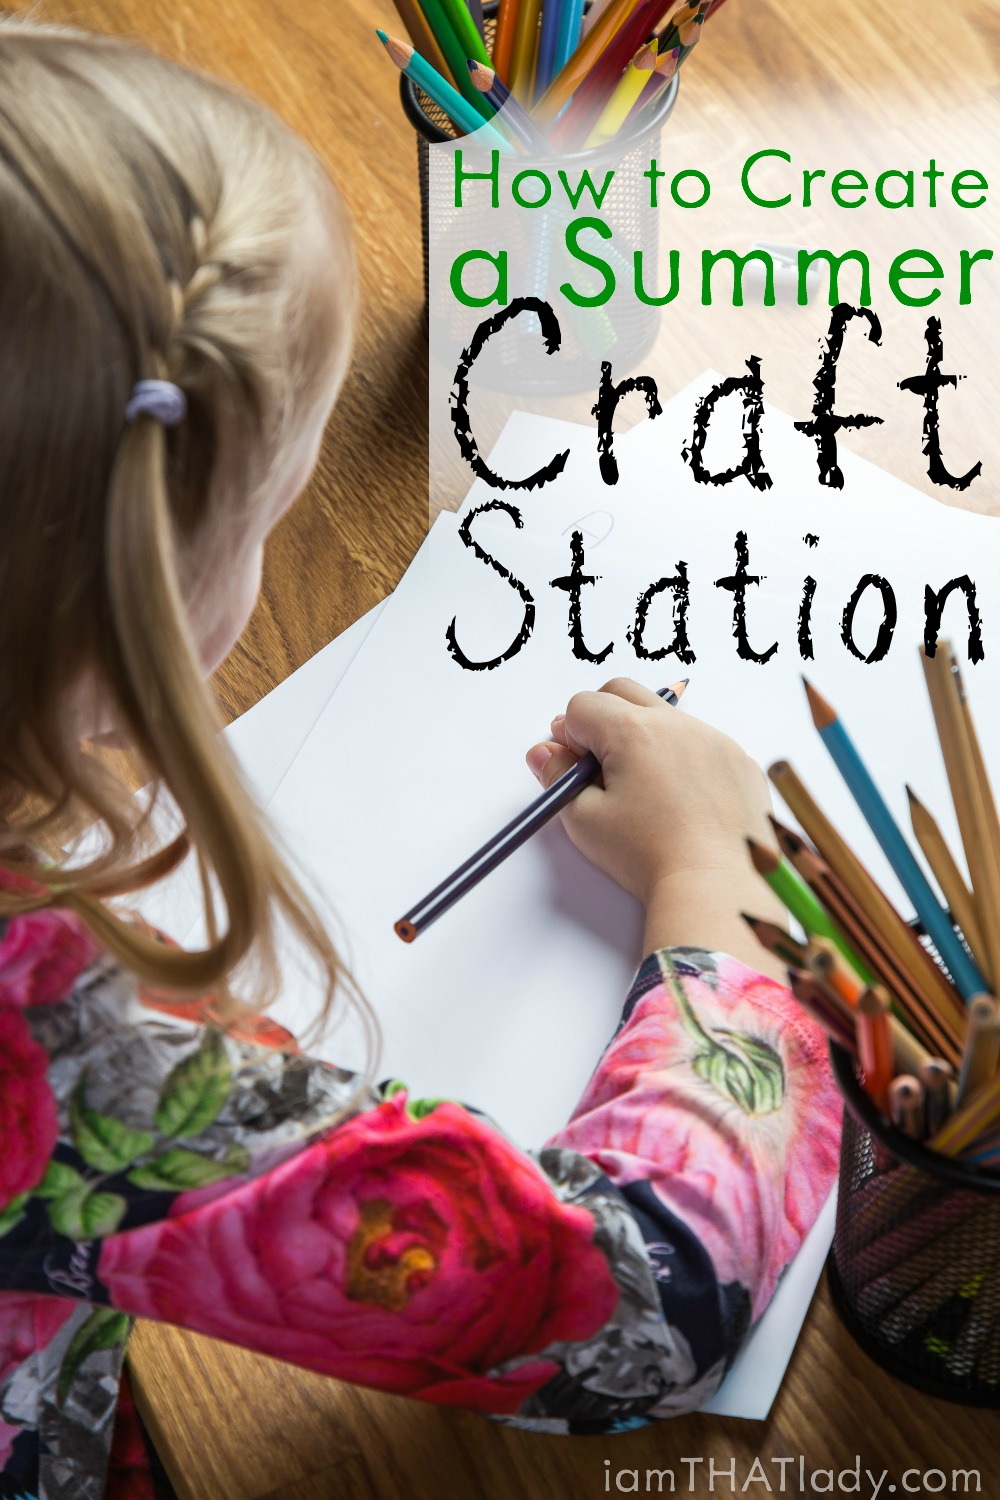 Looking for an education way for your kids to get through the summer? Check out how to easily create a temporary summer craft station!